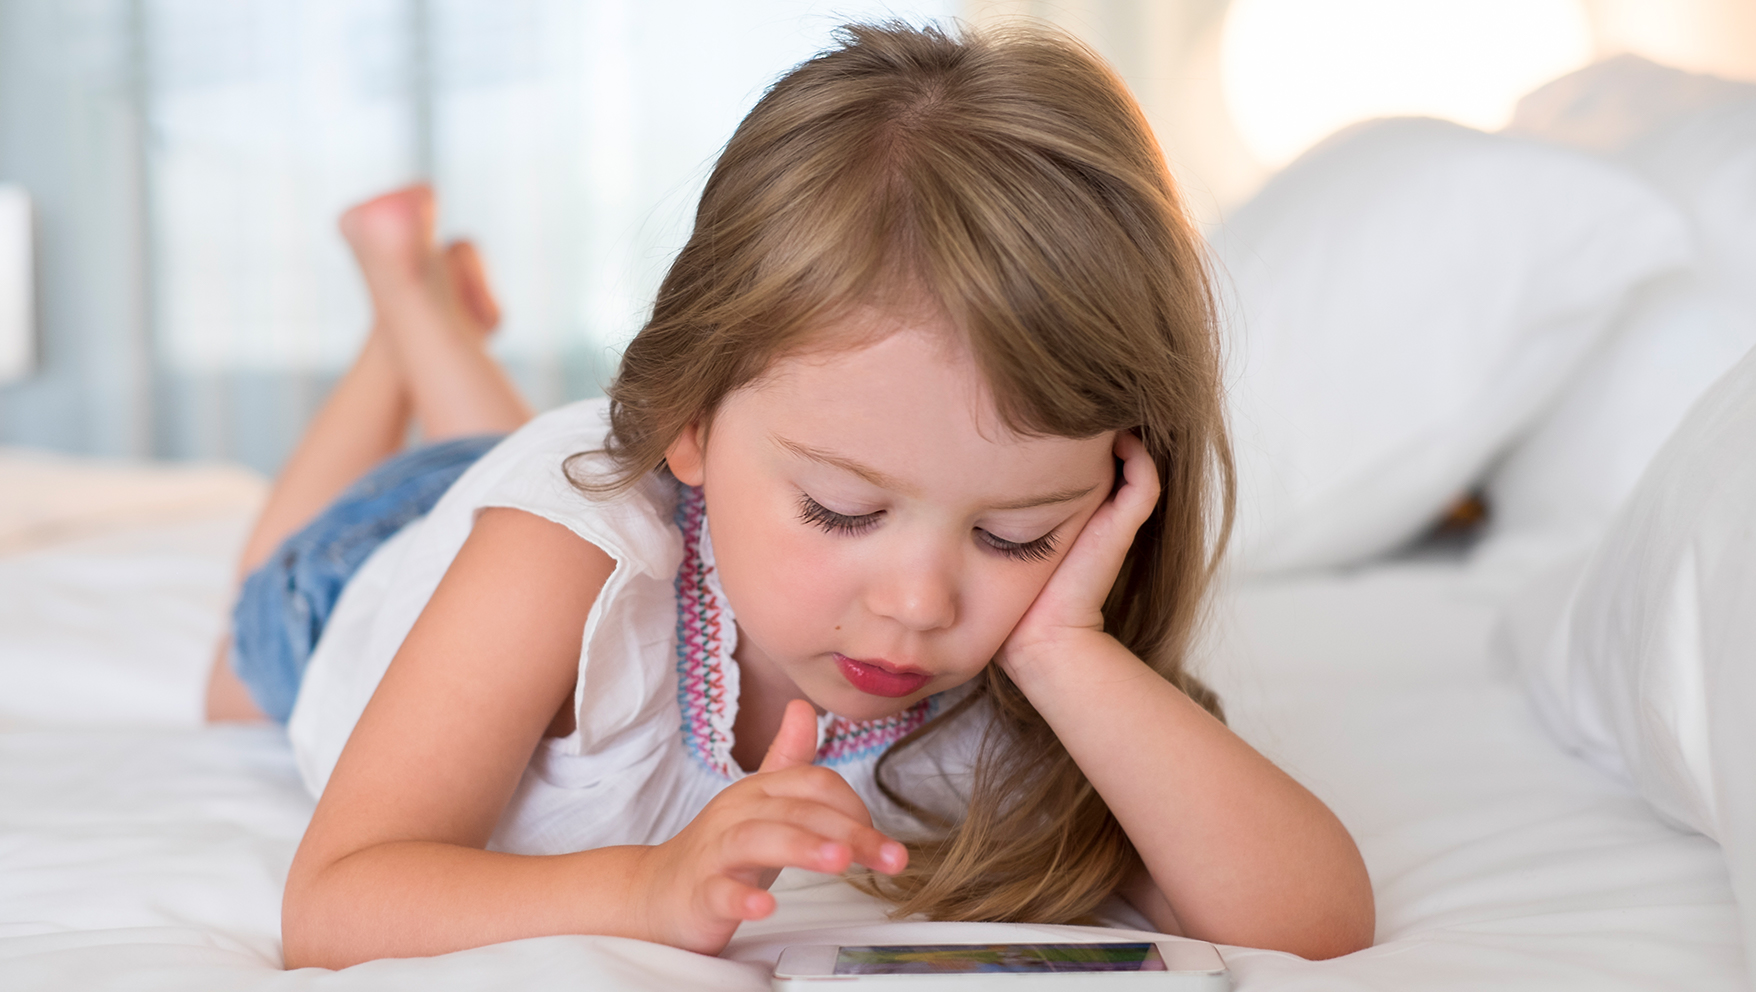 Naman, Siri, and What My Daughter's Questions Are Teaching Me About Prayer